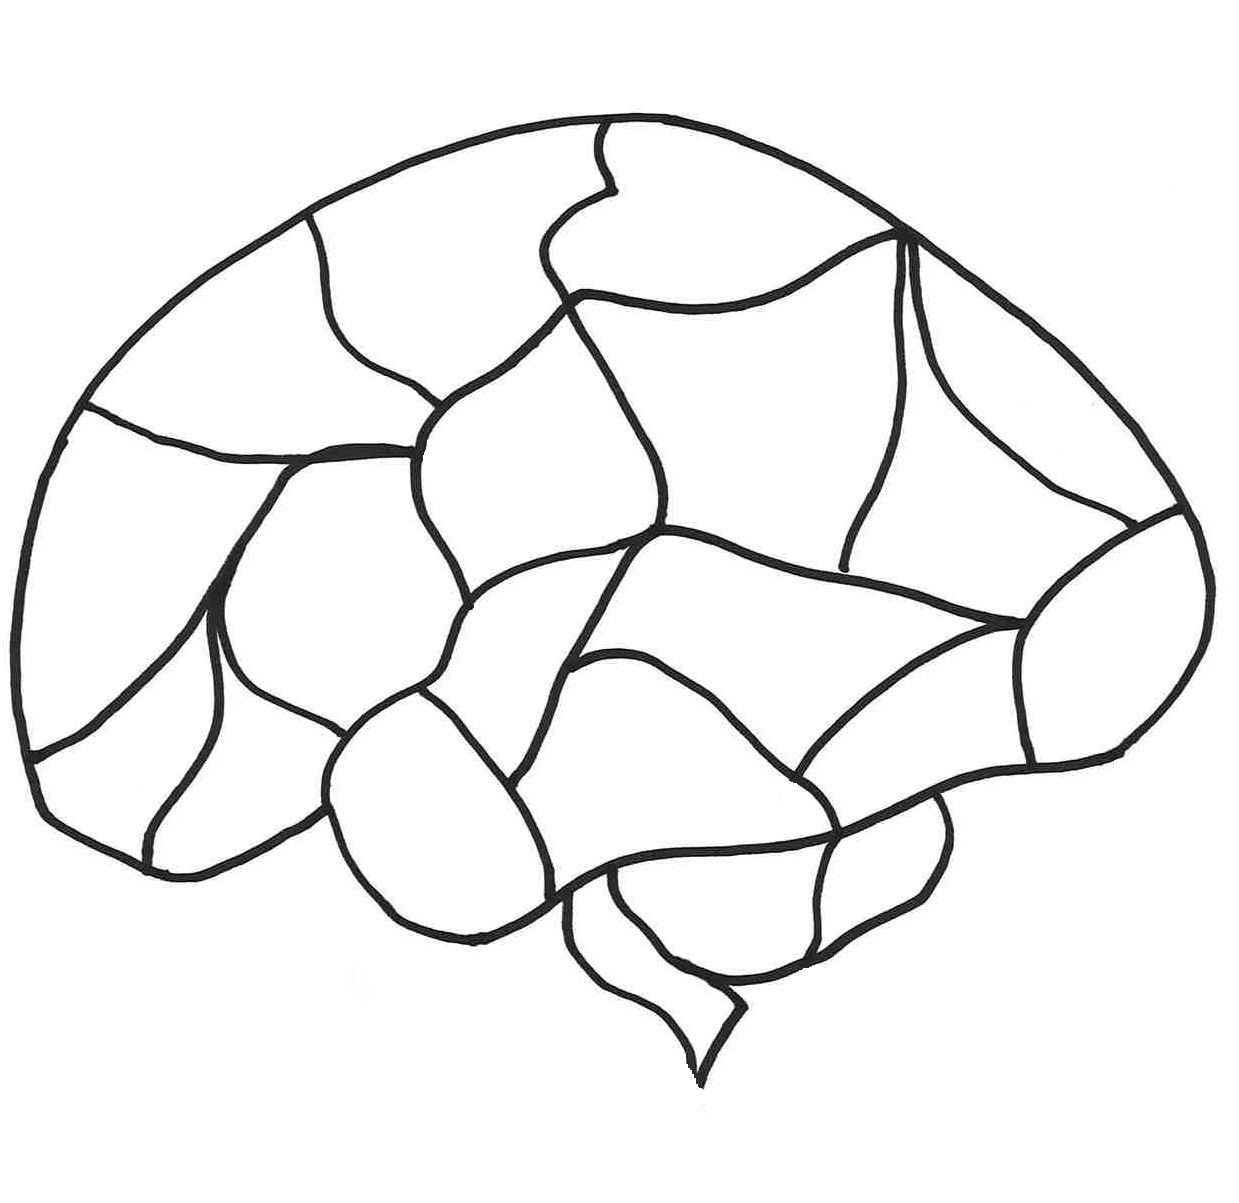 Blank Brain Template I Think I Will Turn This Into A Notes